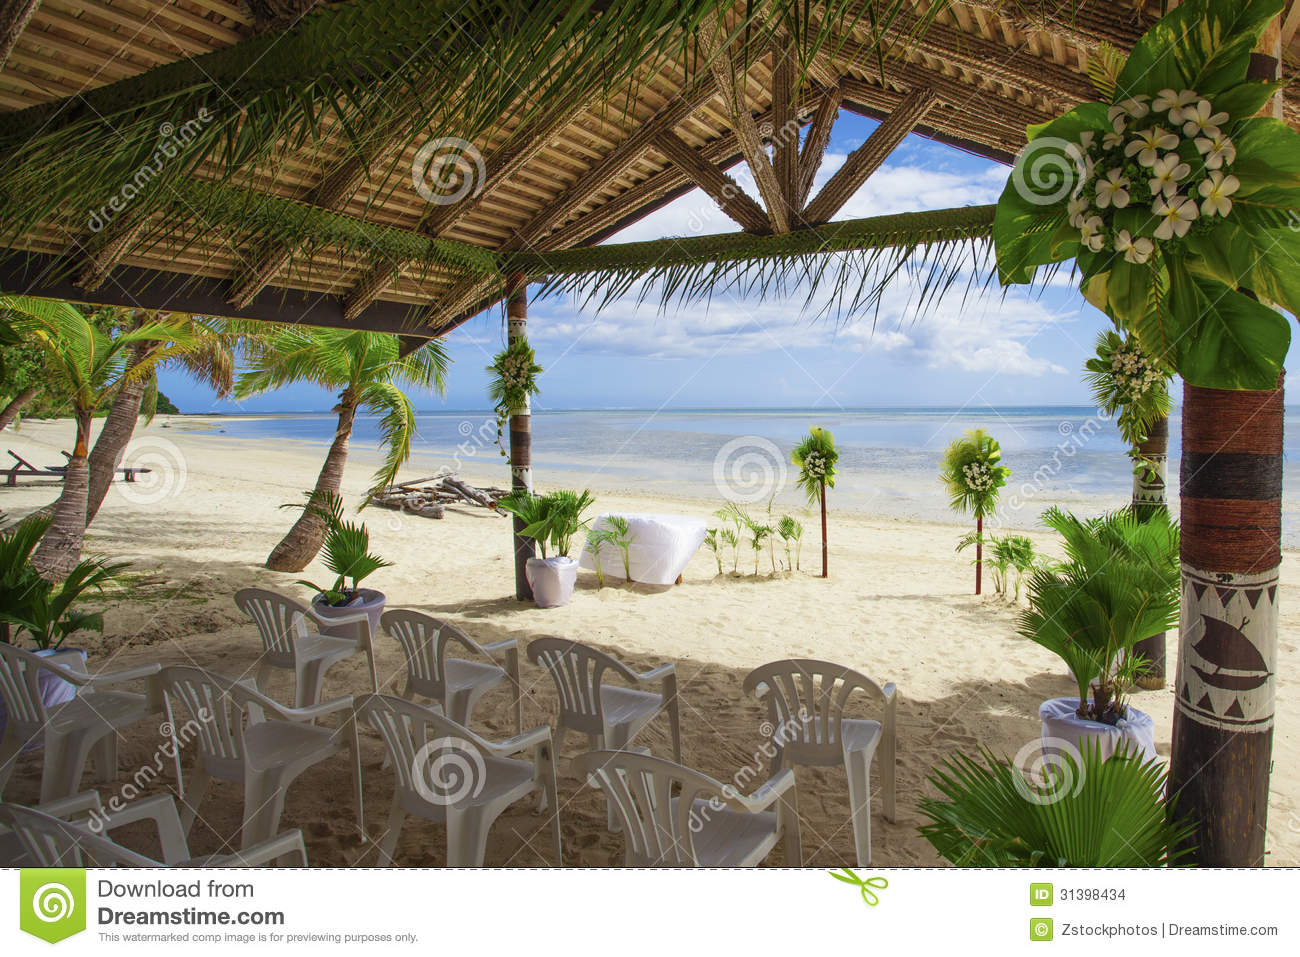 Tropical Fruit Platter For A Beach Wedding: Tropical Wedding Stock Photo. Image Of Coast, Outdoor